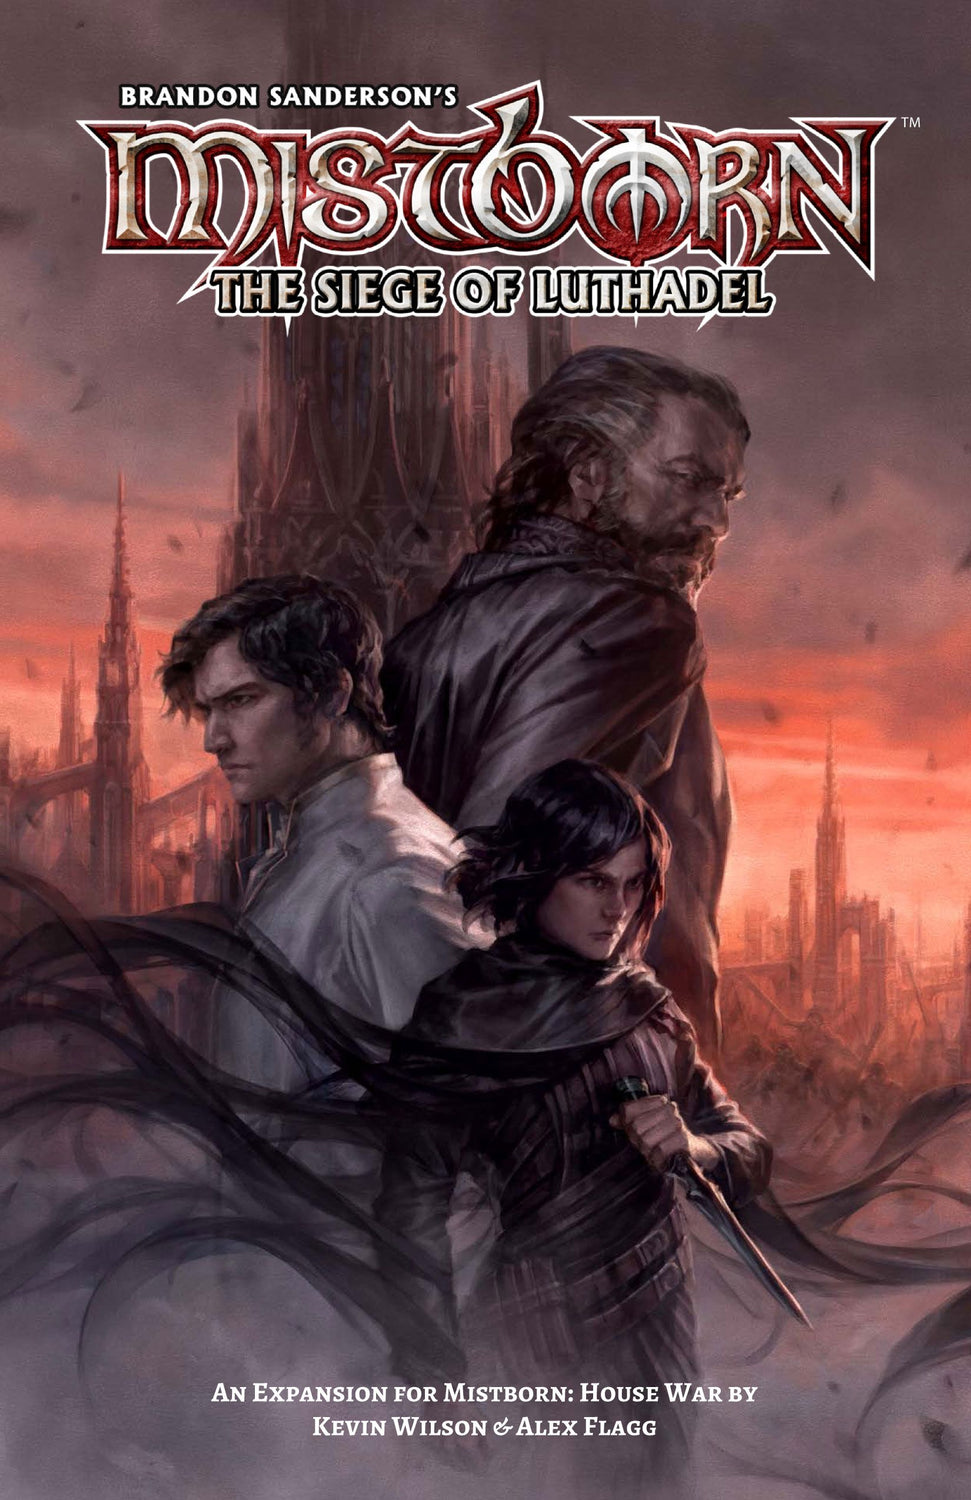 Mistborn: The Siege of Luthadel